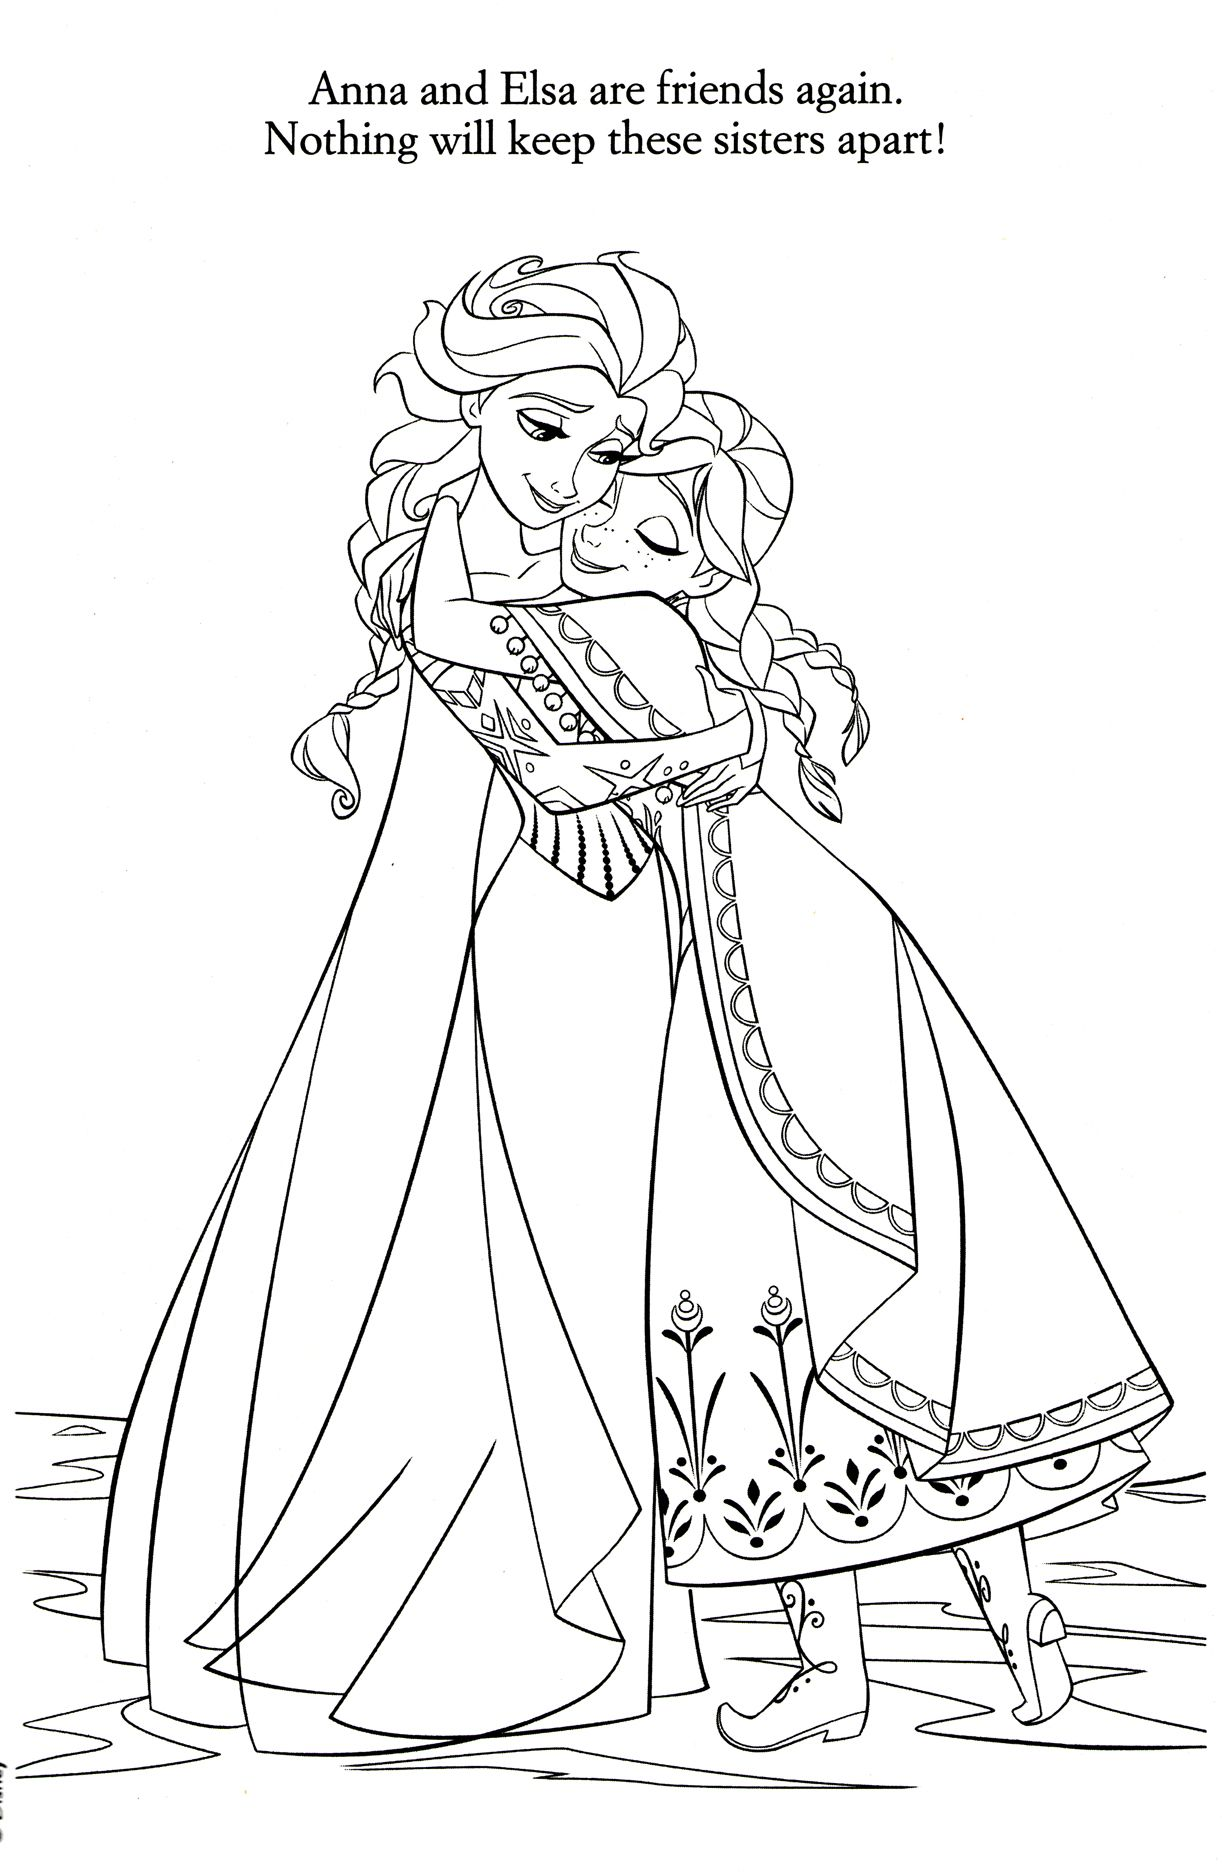 Pin By Meridith Springer On Color Pages Frozen Coloring Frozen Coloring Pages Disney Coloring Pages